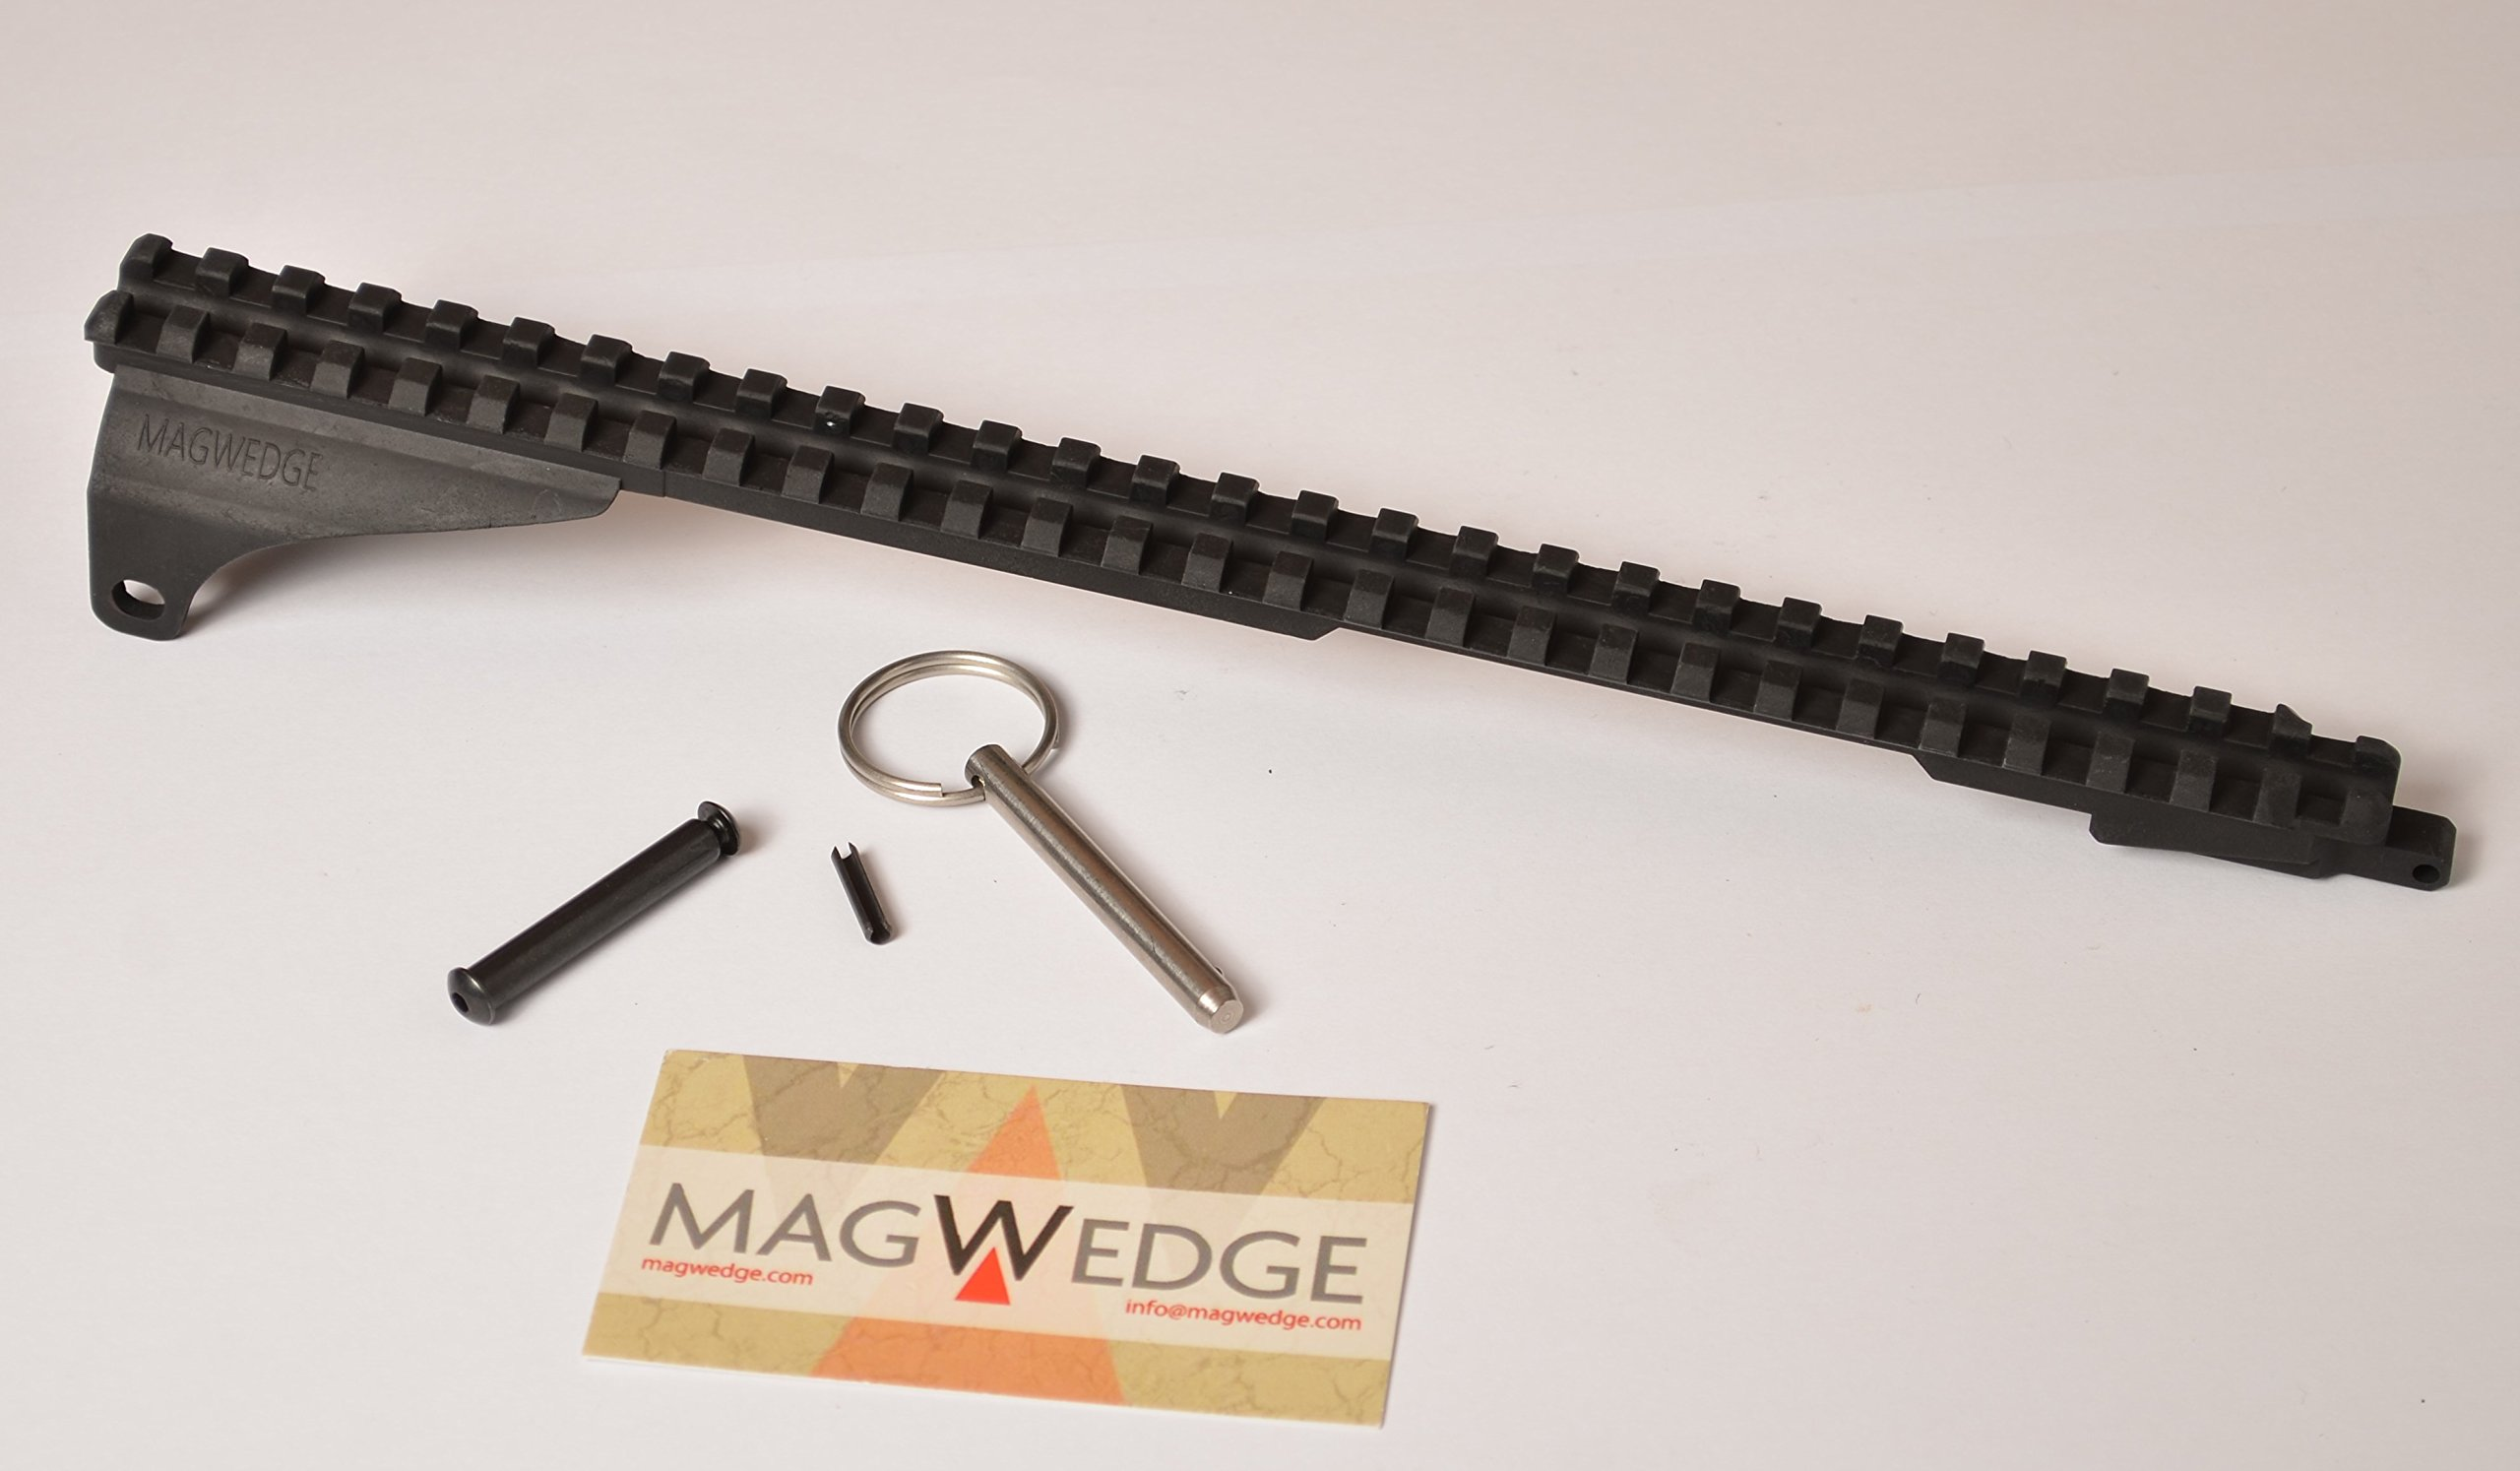 Magwedge SKS Rail Scope Mount KwikRail Gen 2.5 by Magwedge